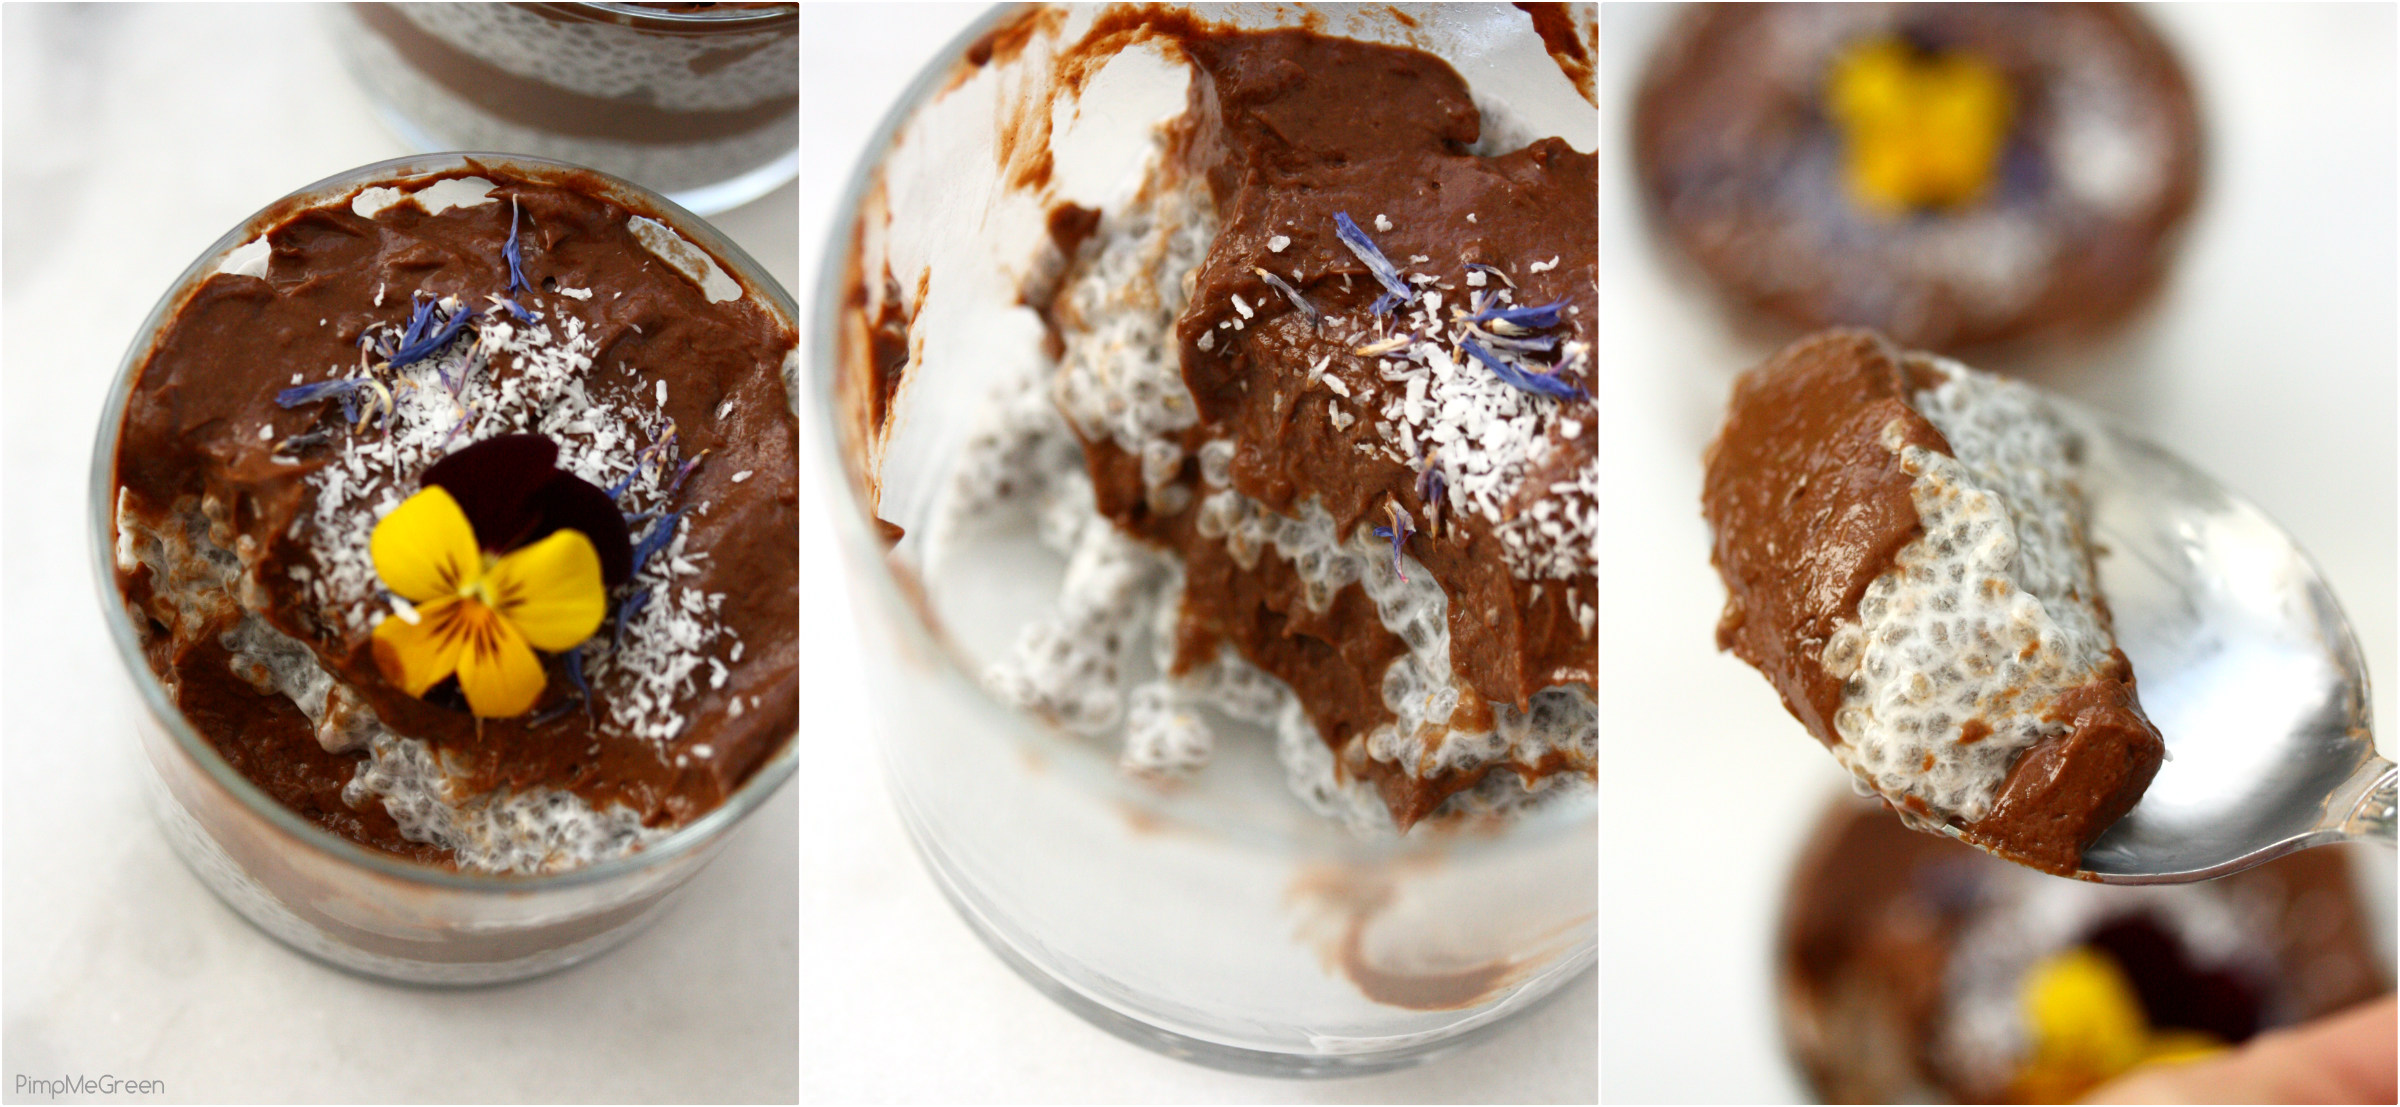 Chocomole pudding Collage PMG